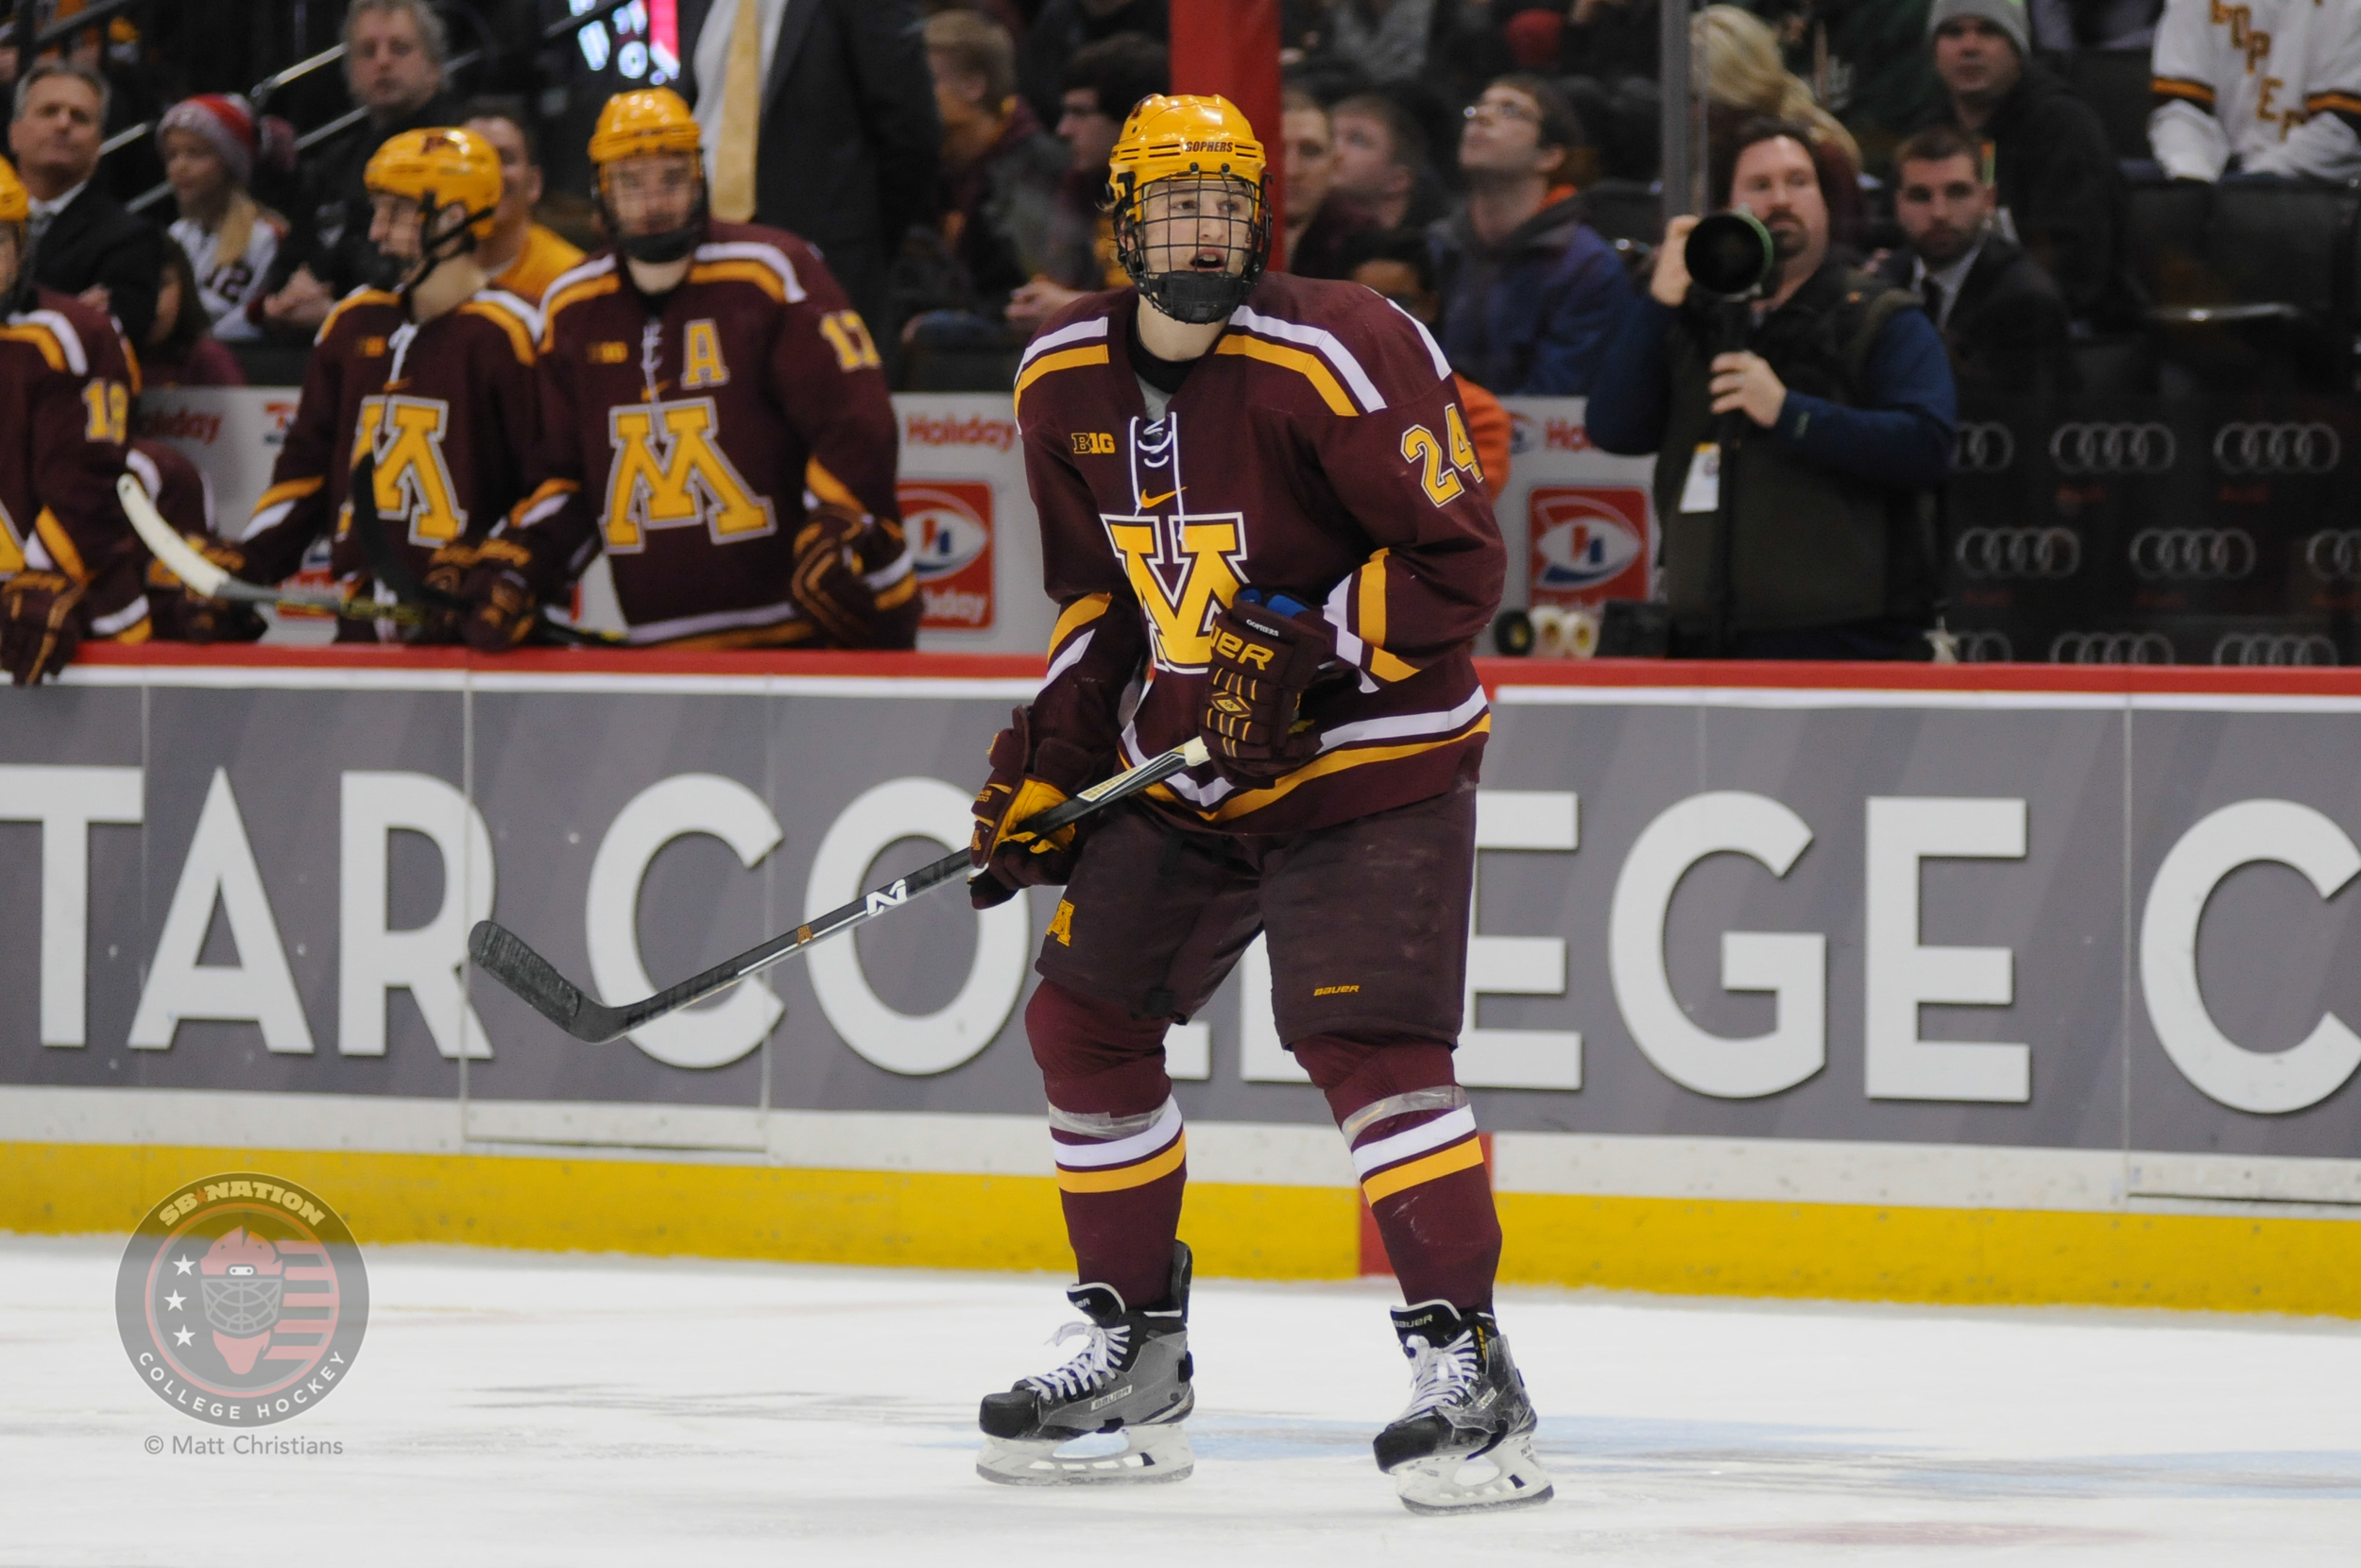 BIG10: Fasching's OT Blast Puts Minnesota Back Atop Table